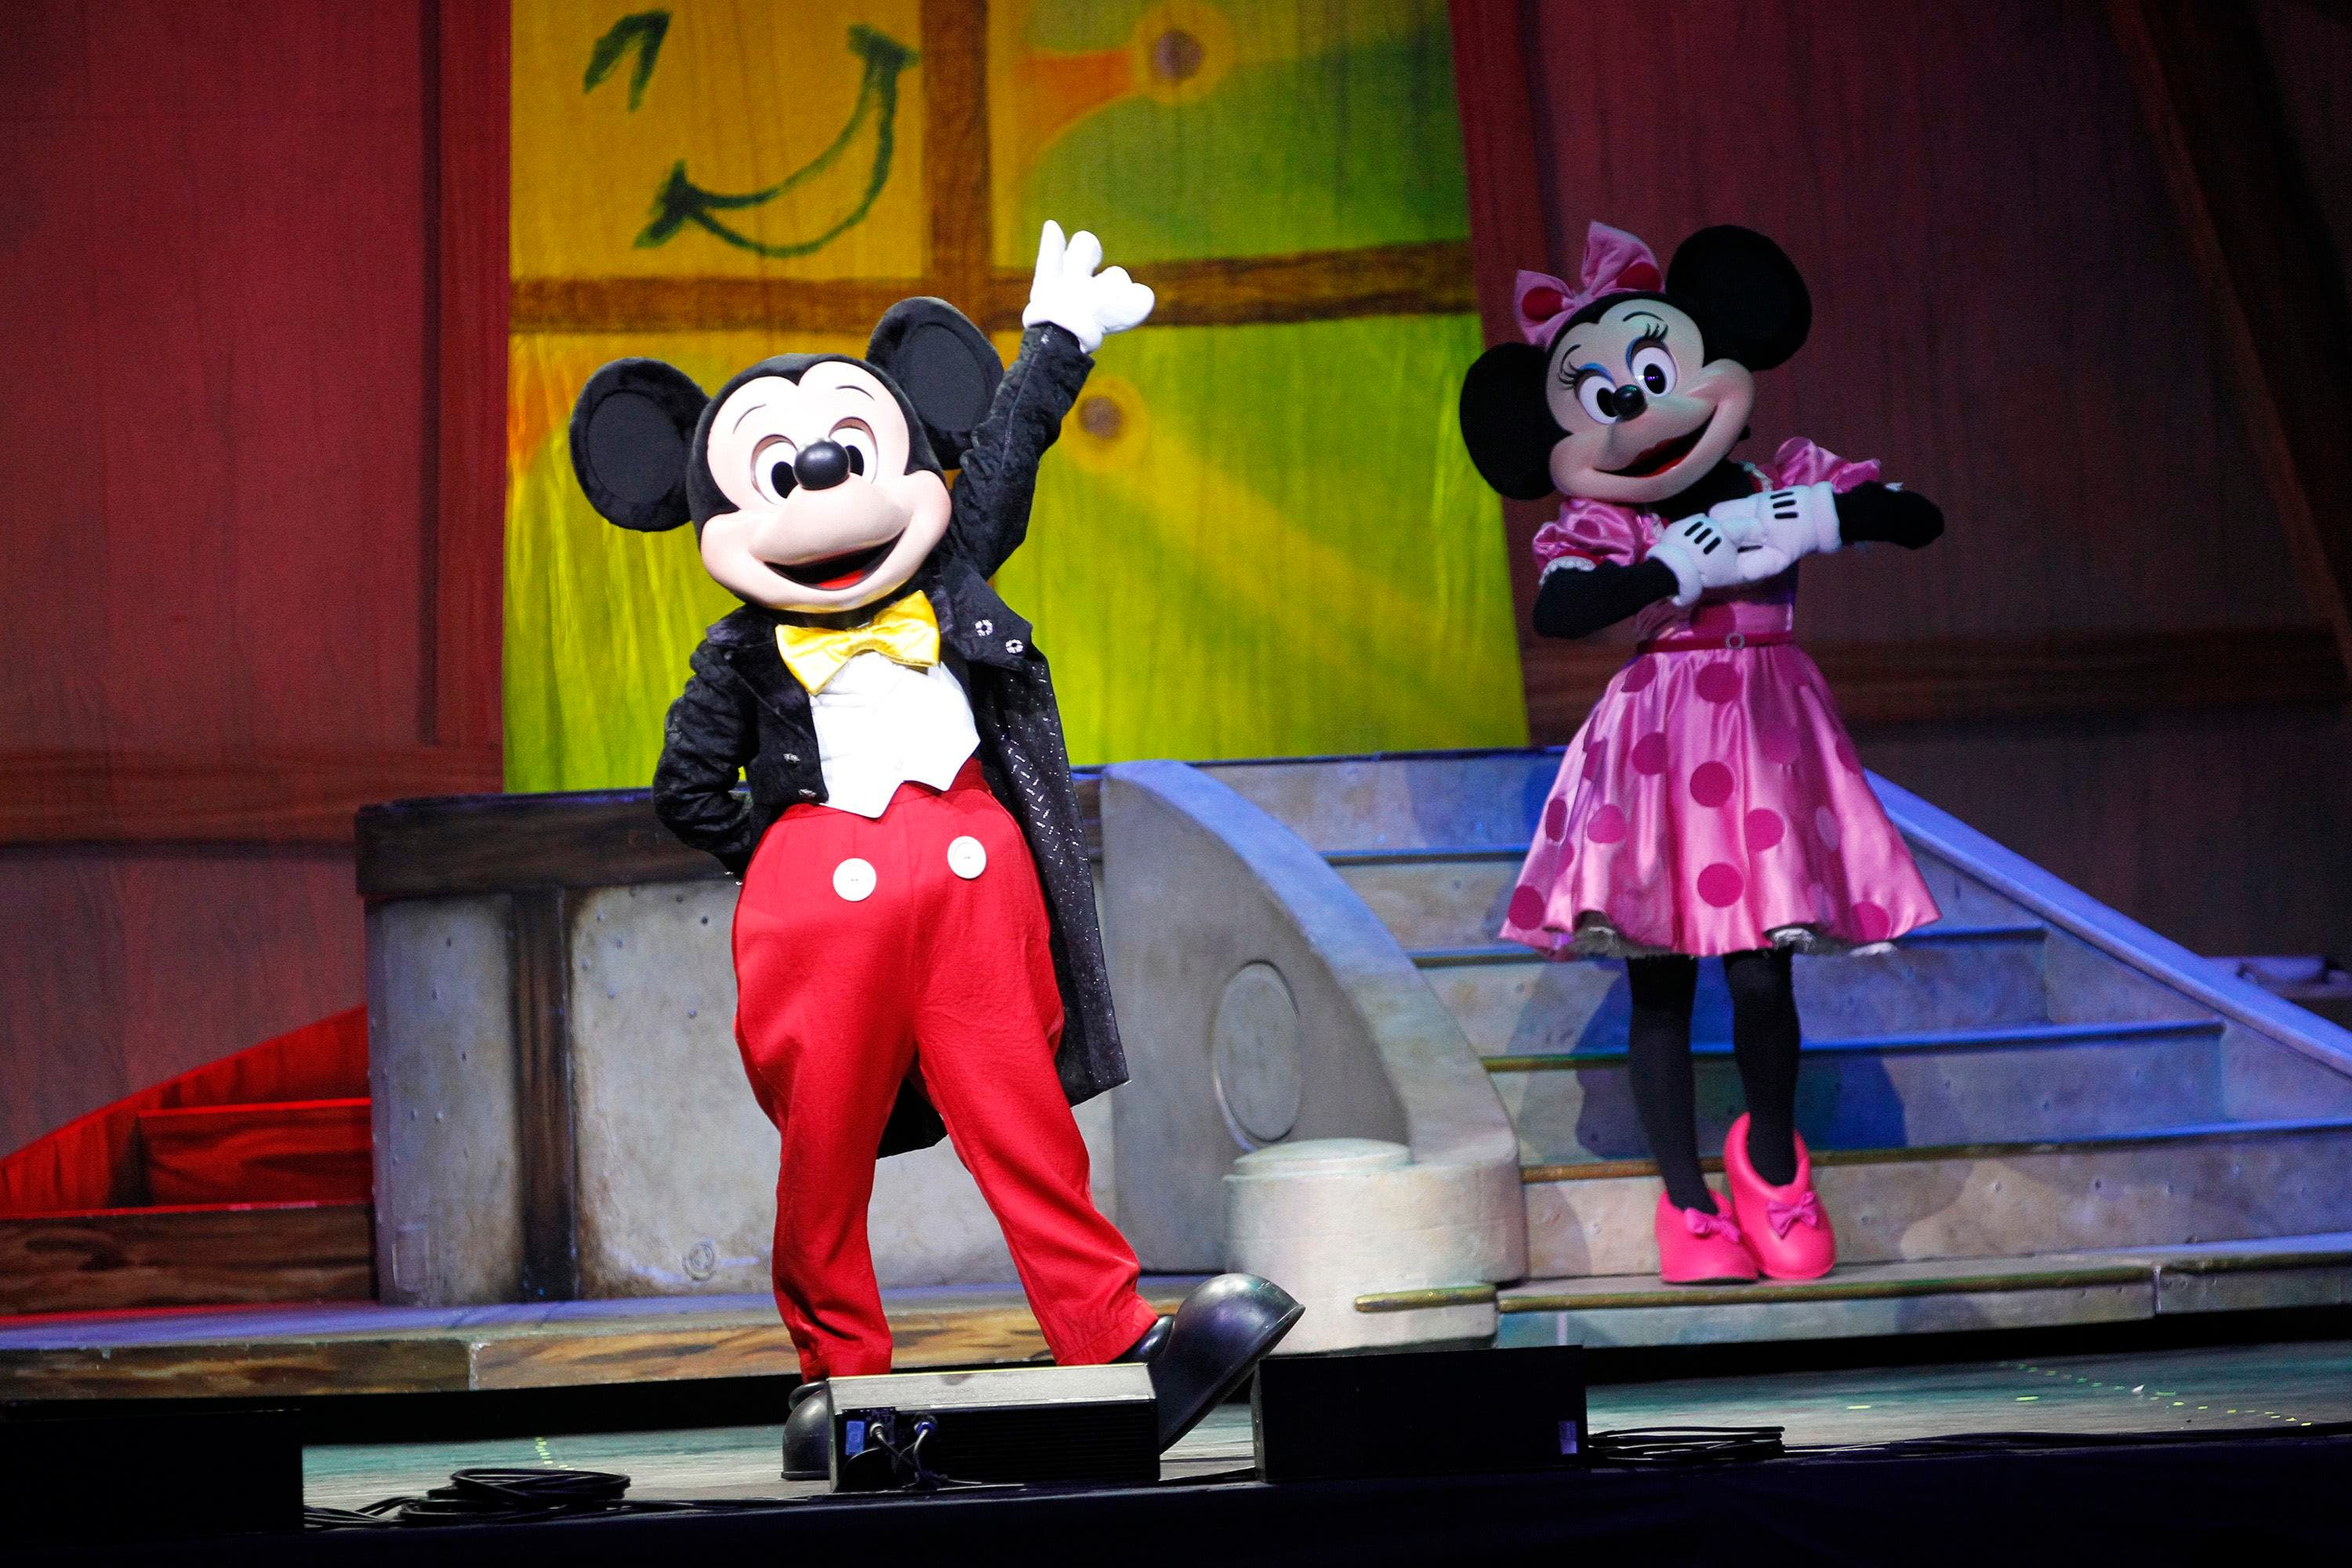 Actors dressed as Walt Disney characters Mickey Mouse and Minnie Mouse perform during a Disney Live! show. (Reuters)